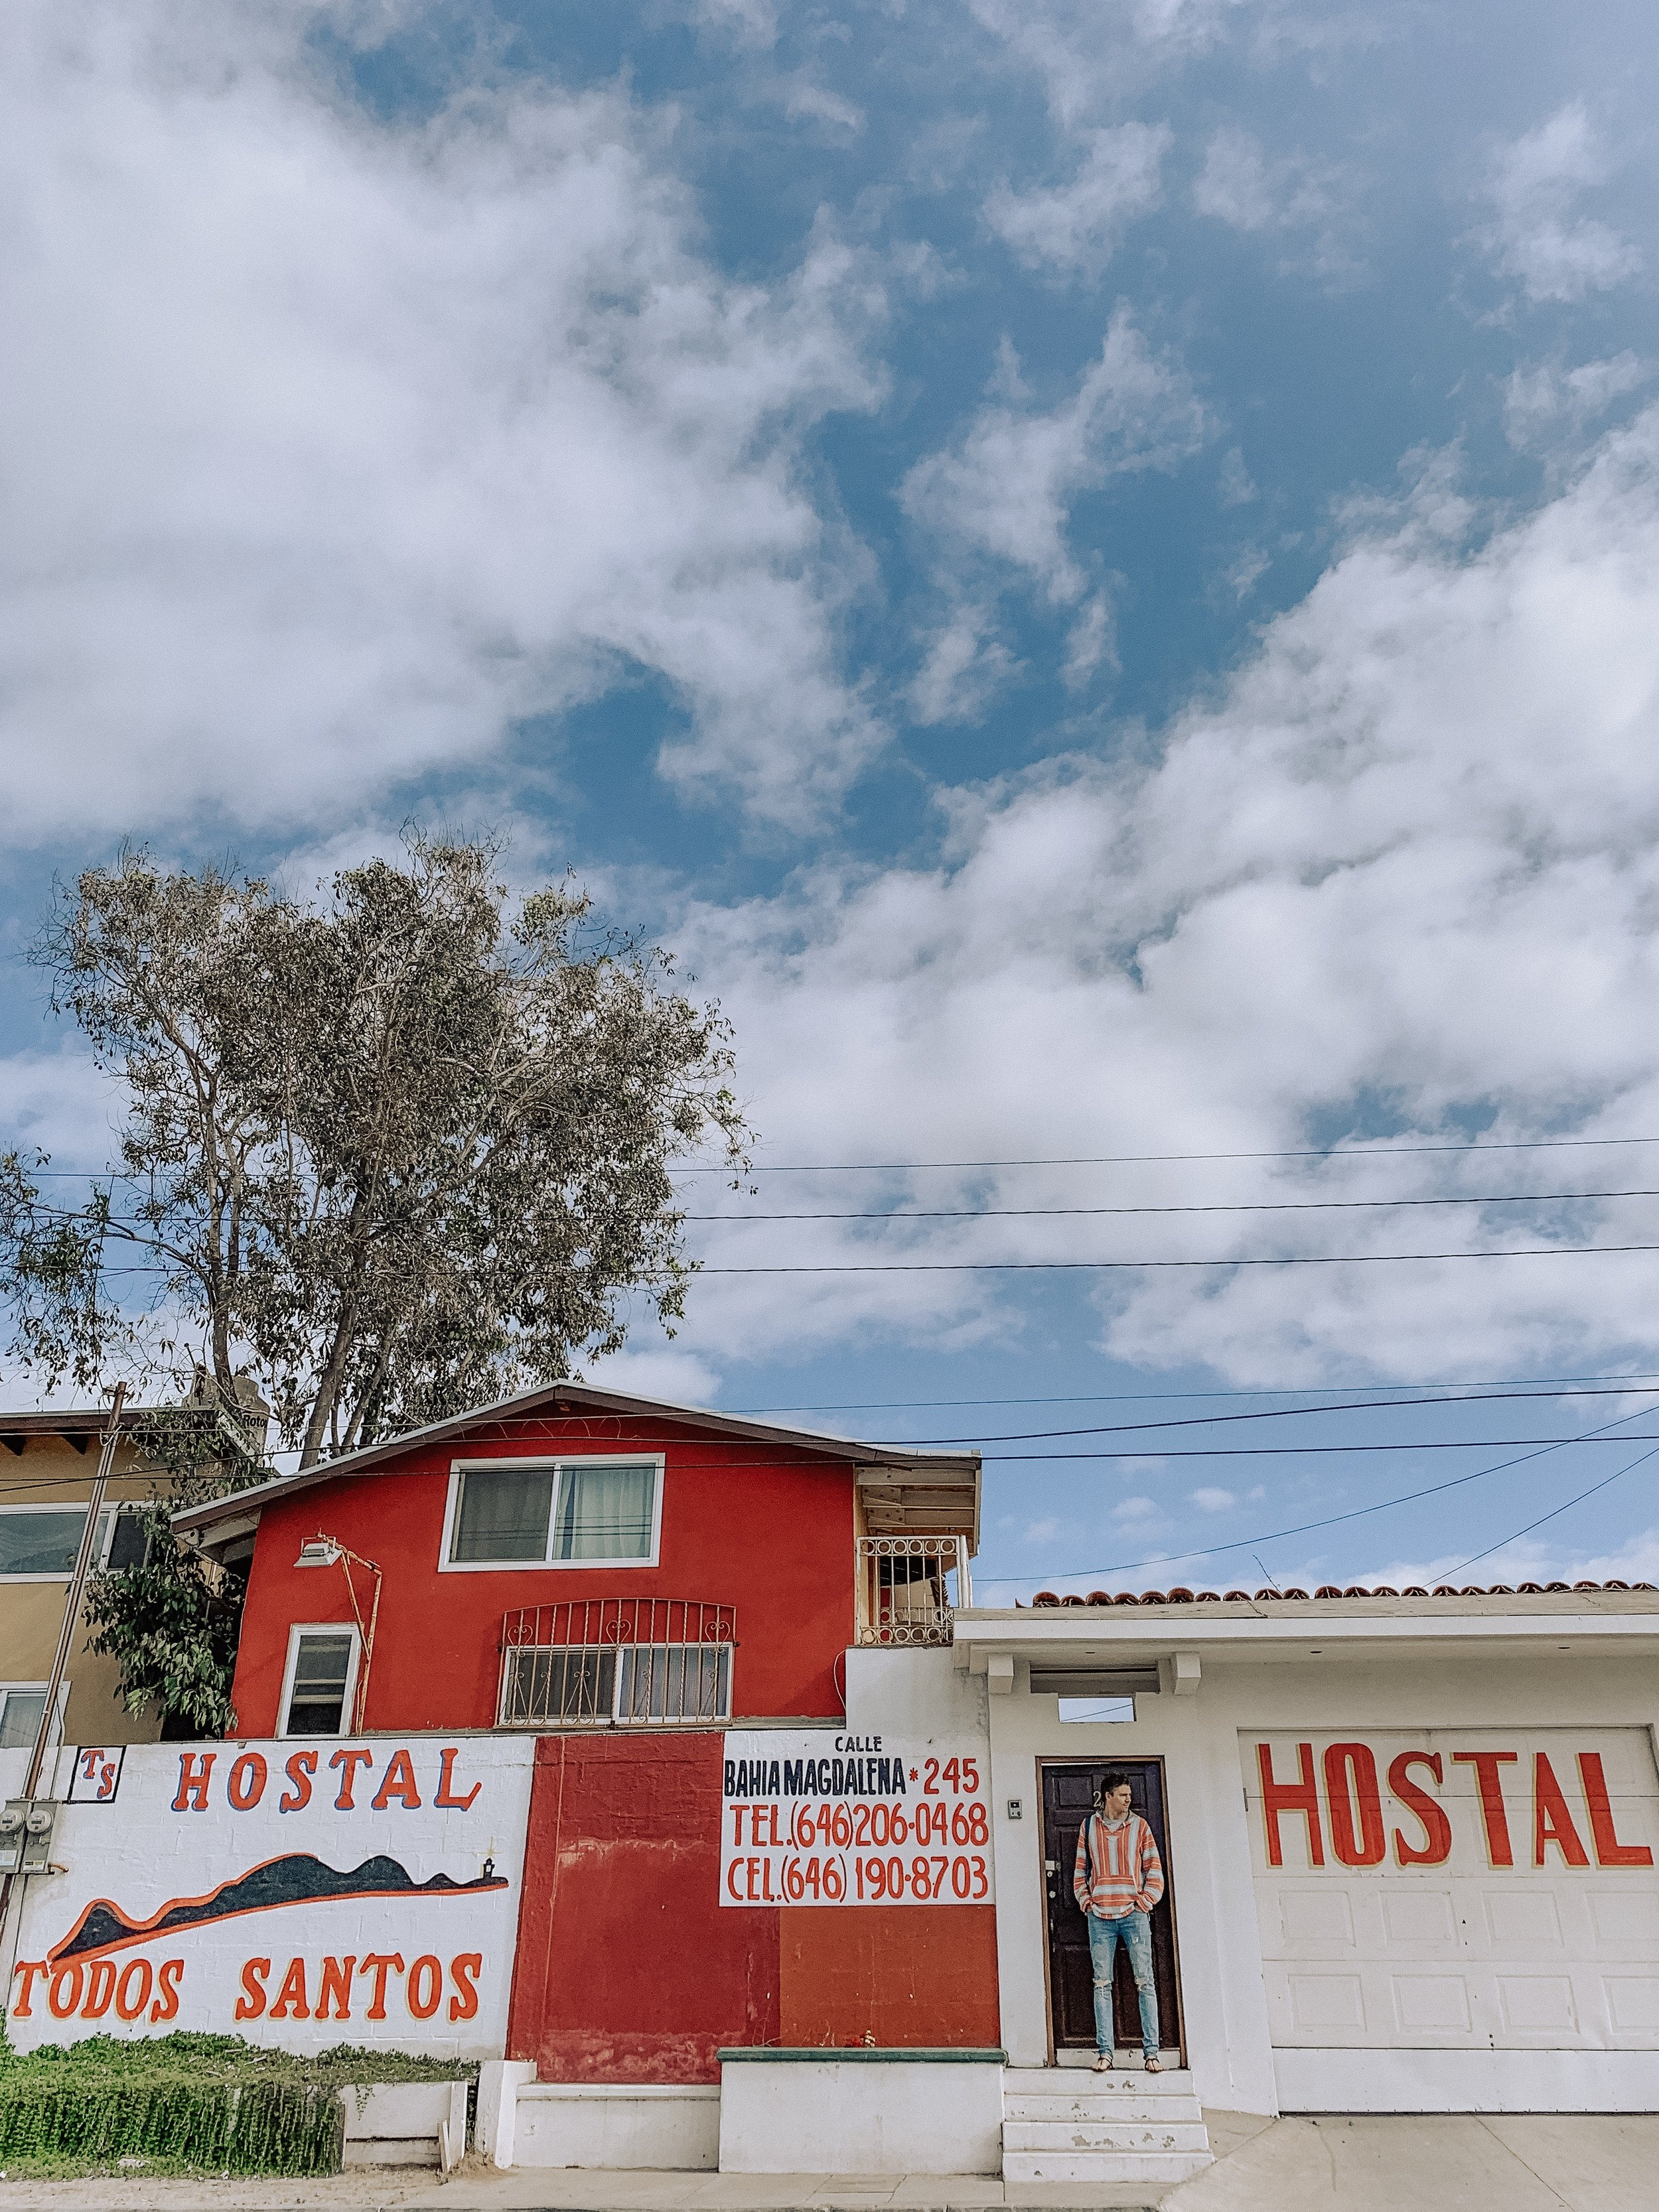 Our hostel in Ensenada, aptly named after a city that is 1,000 miles south of here.